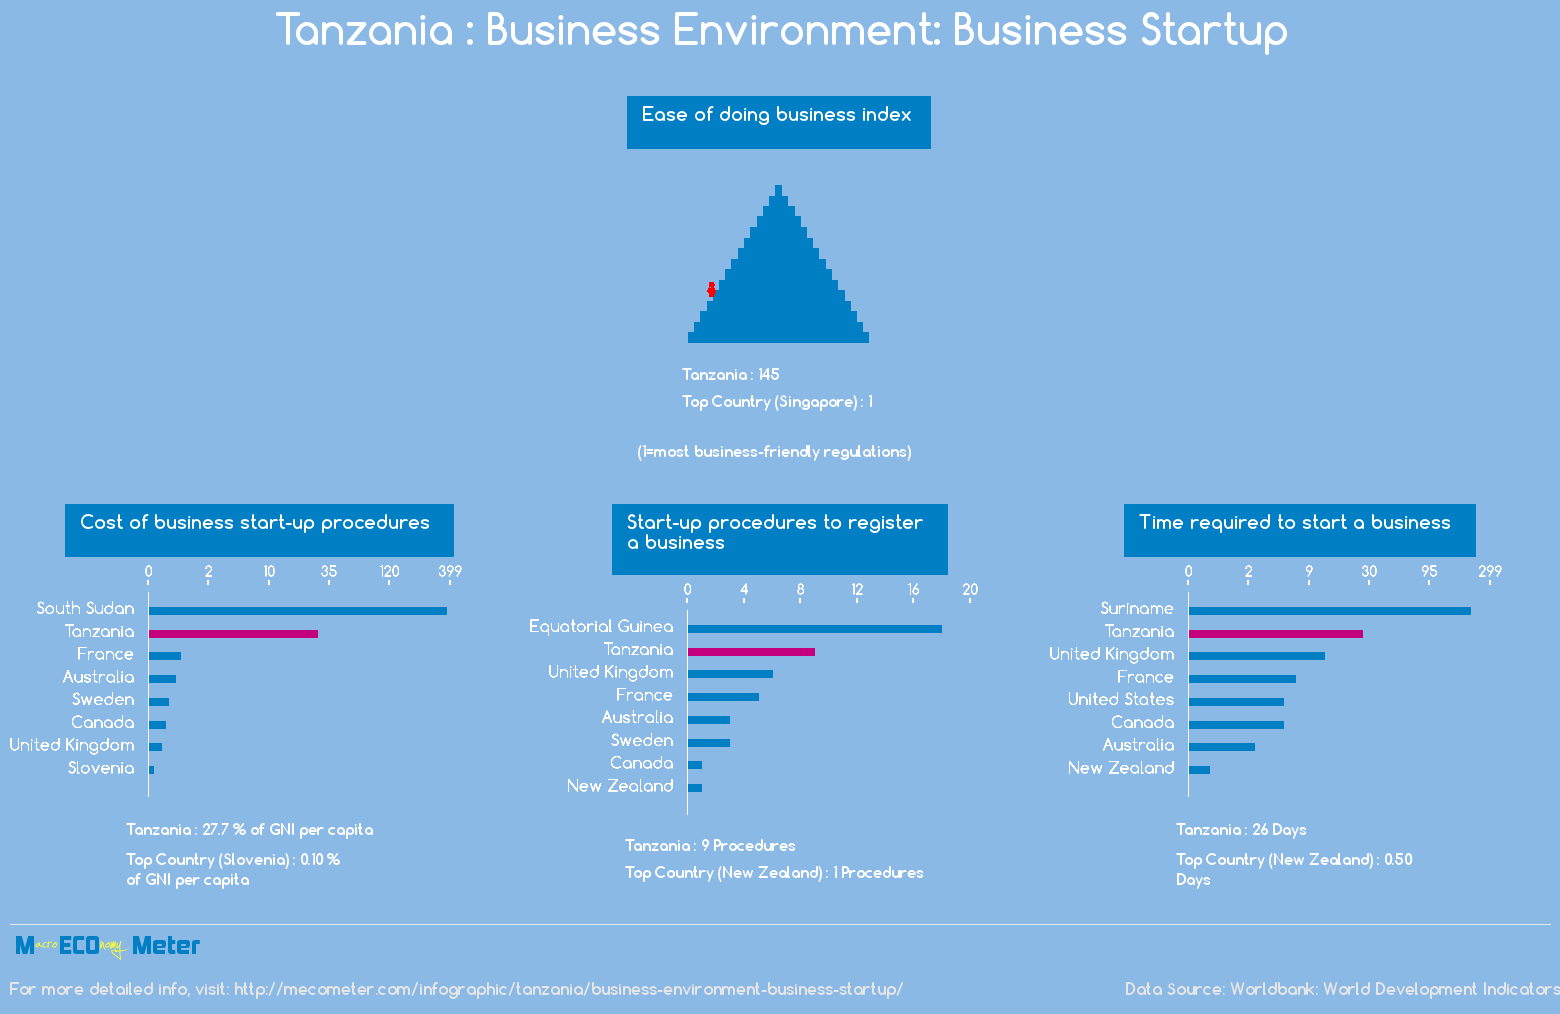 Tanzania : Business Environment: Business Startup